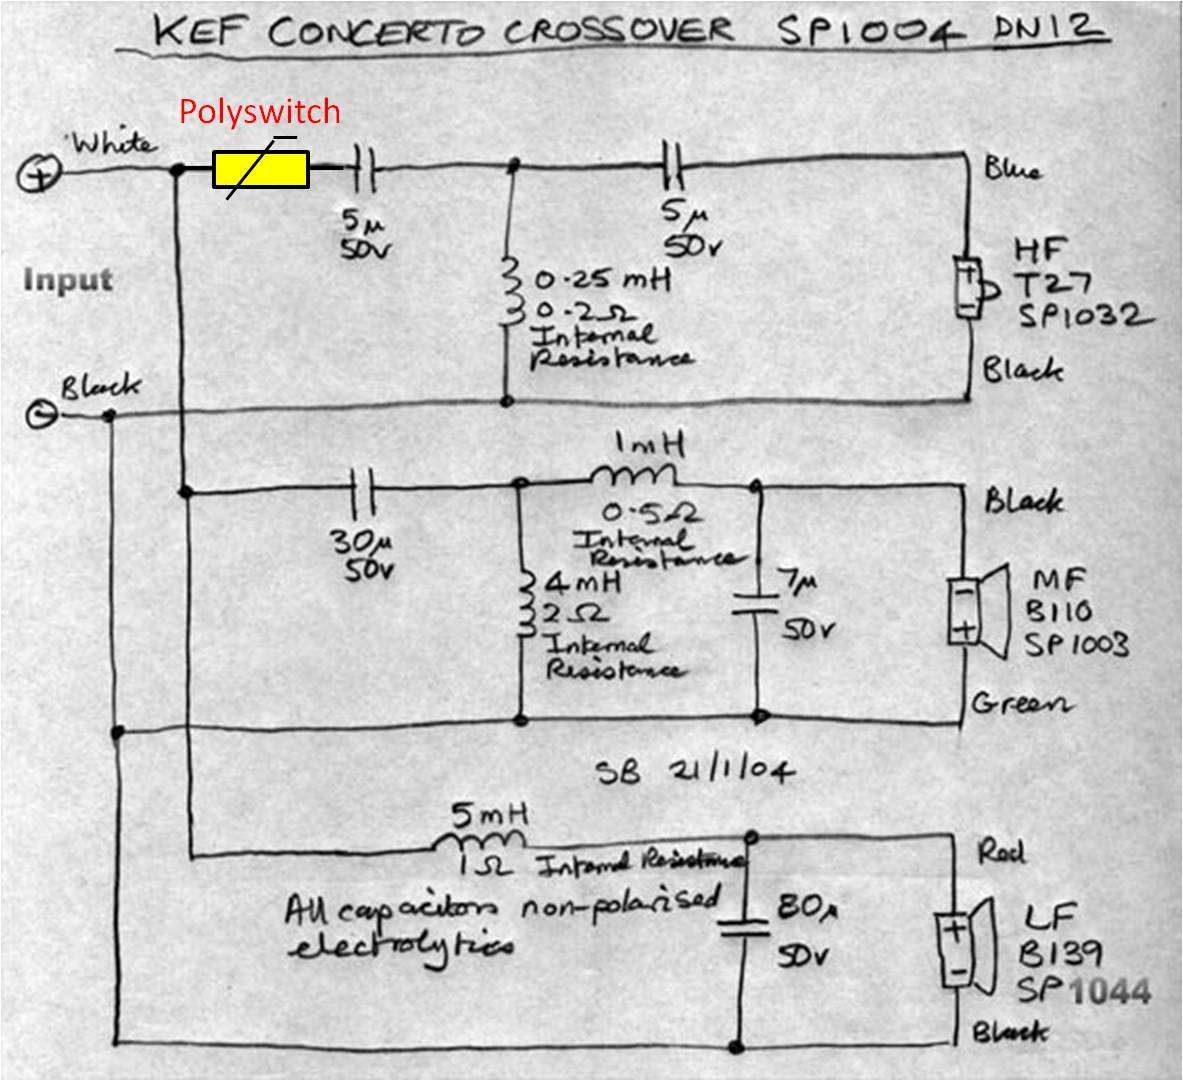 Kef Model 30b Wiring Diagram Page 2 And Schematics Melody Maker Concerto Speakers The Good Bad Rh Stereo Net Au